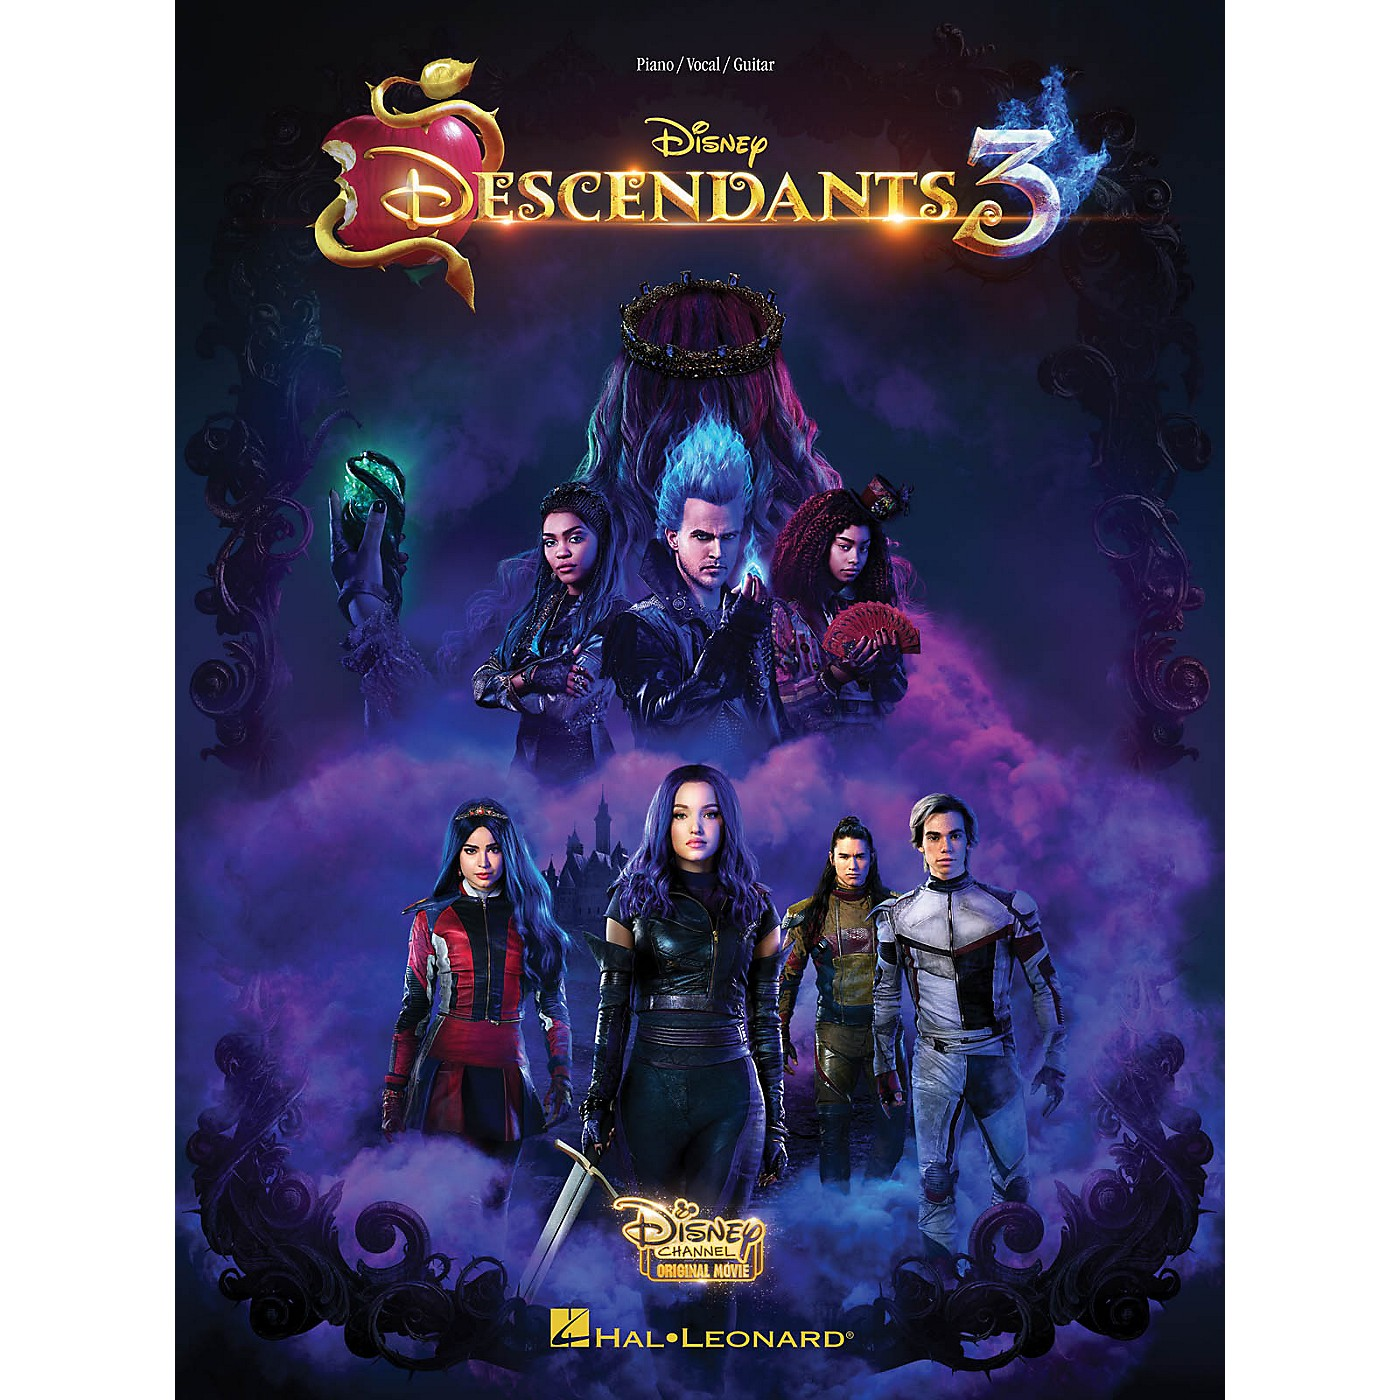 Hal Leonard Descendants 3 (Music from the Disney Channel Original Movie) Piano/Vocal/Guitar Songbook thumbnail